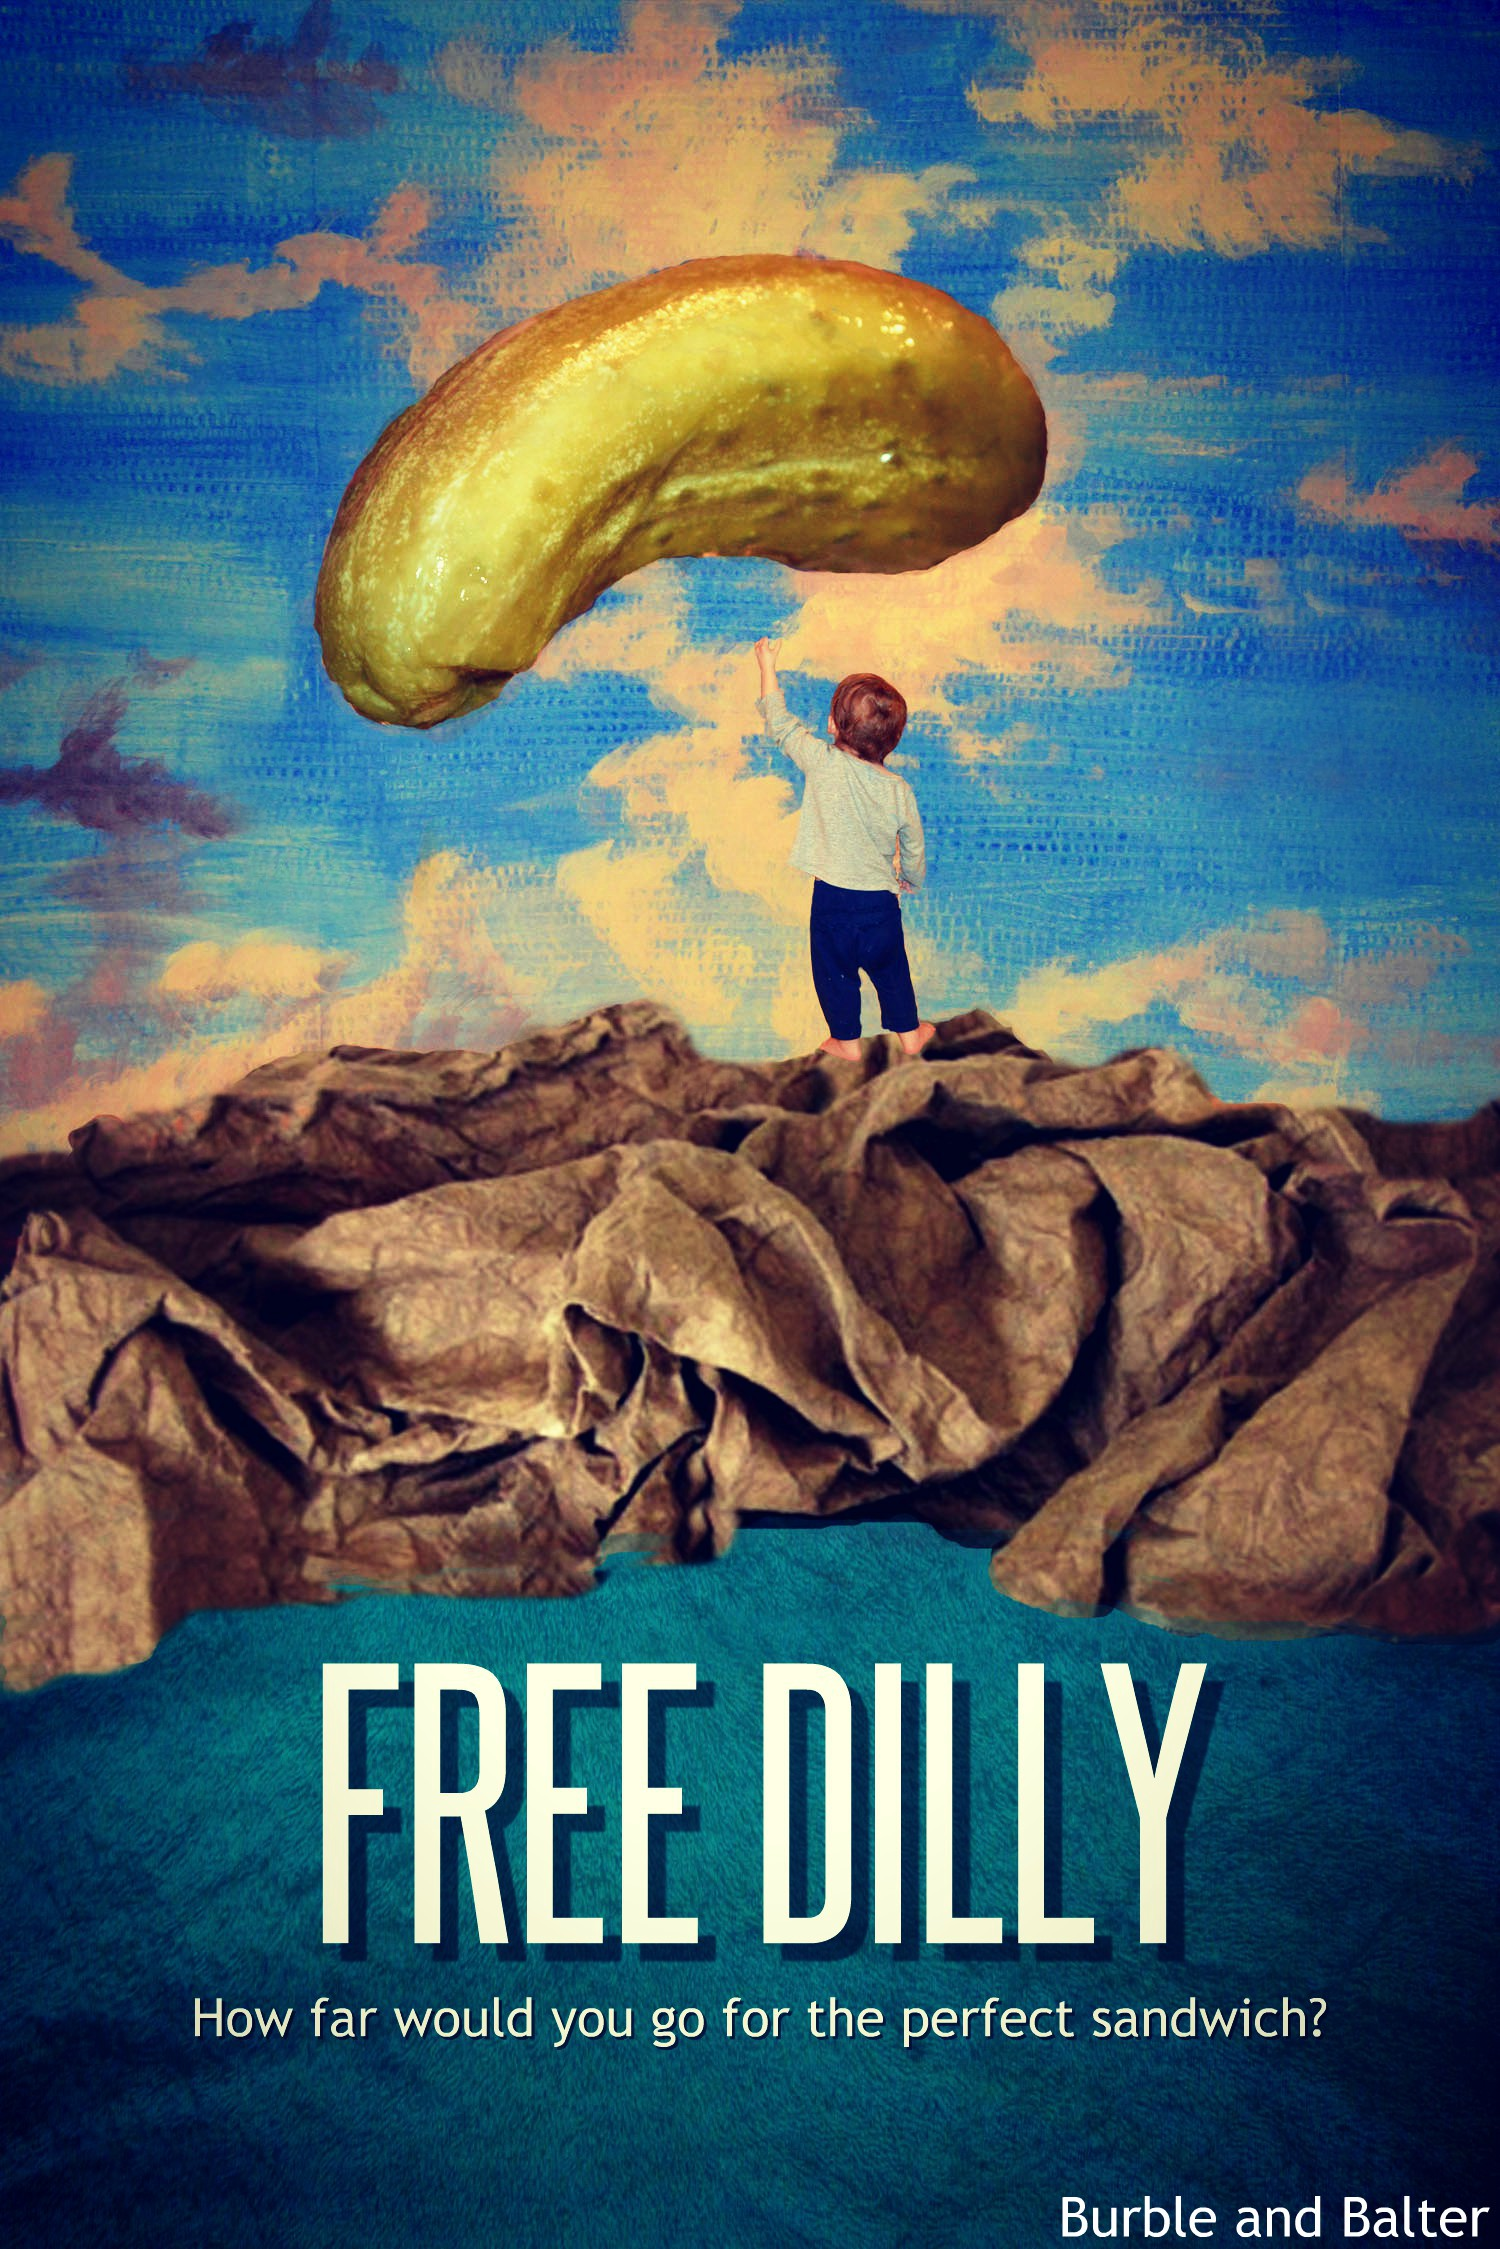 Free-Dilly-Photo-Burble-and-Balter.jpg